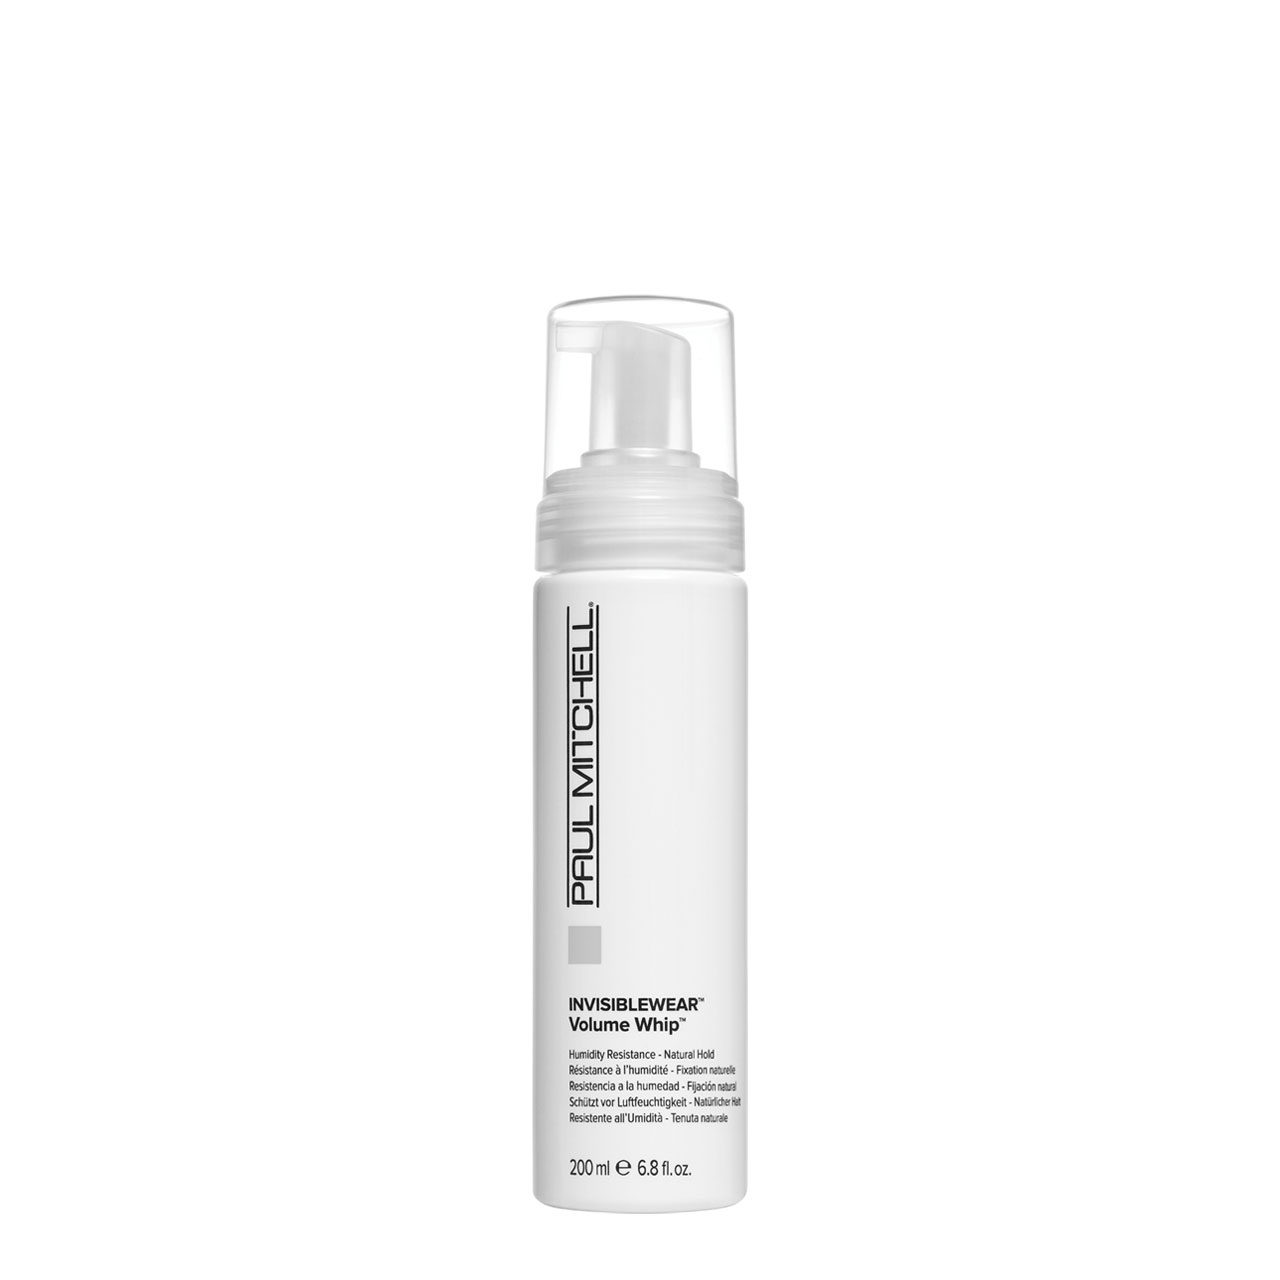 Paul Mitchell Invisible Wear Volume Whip